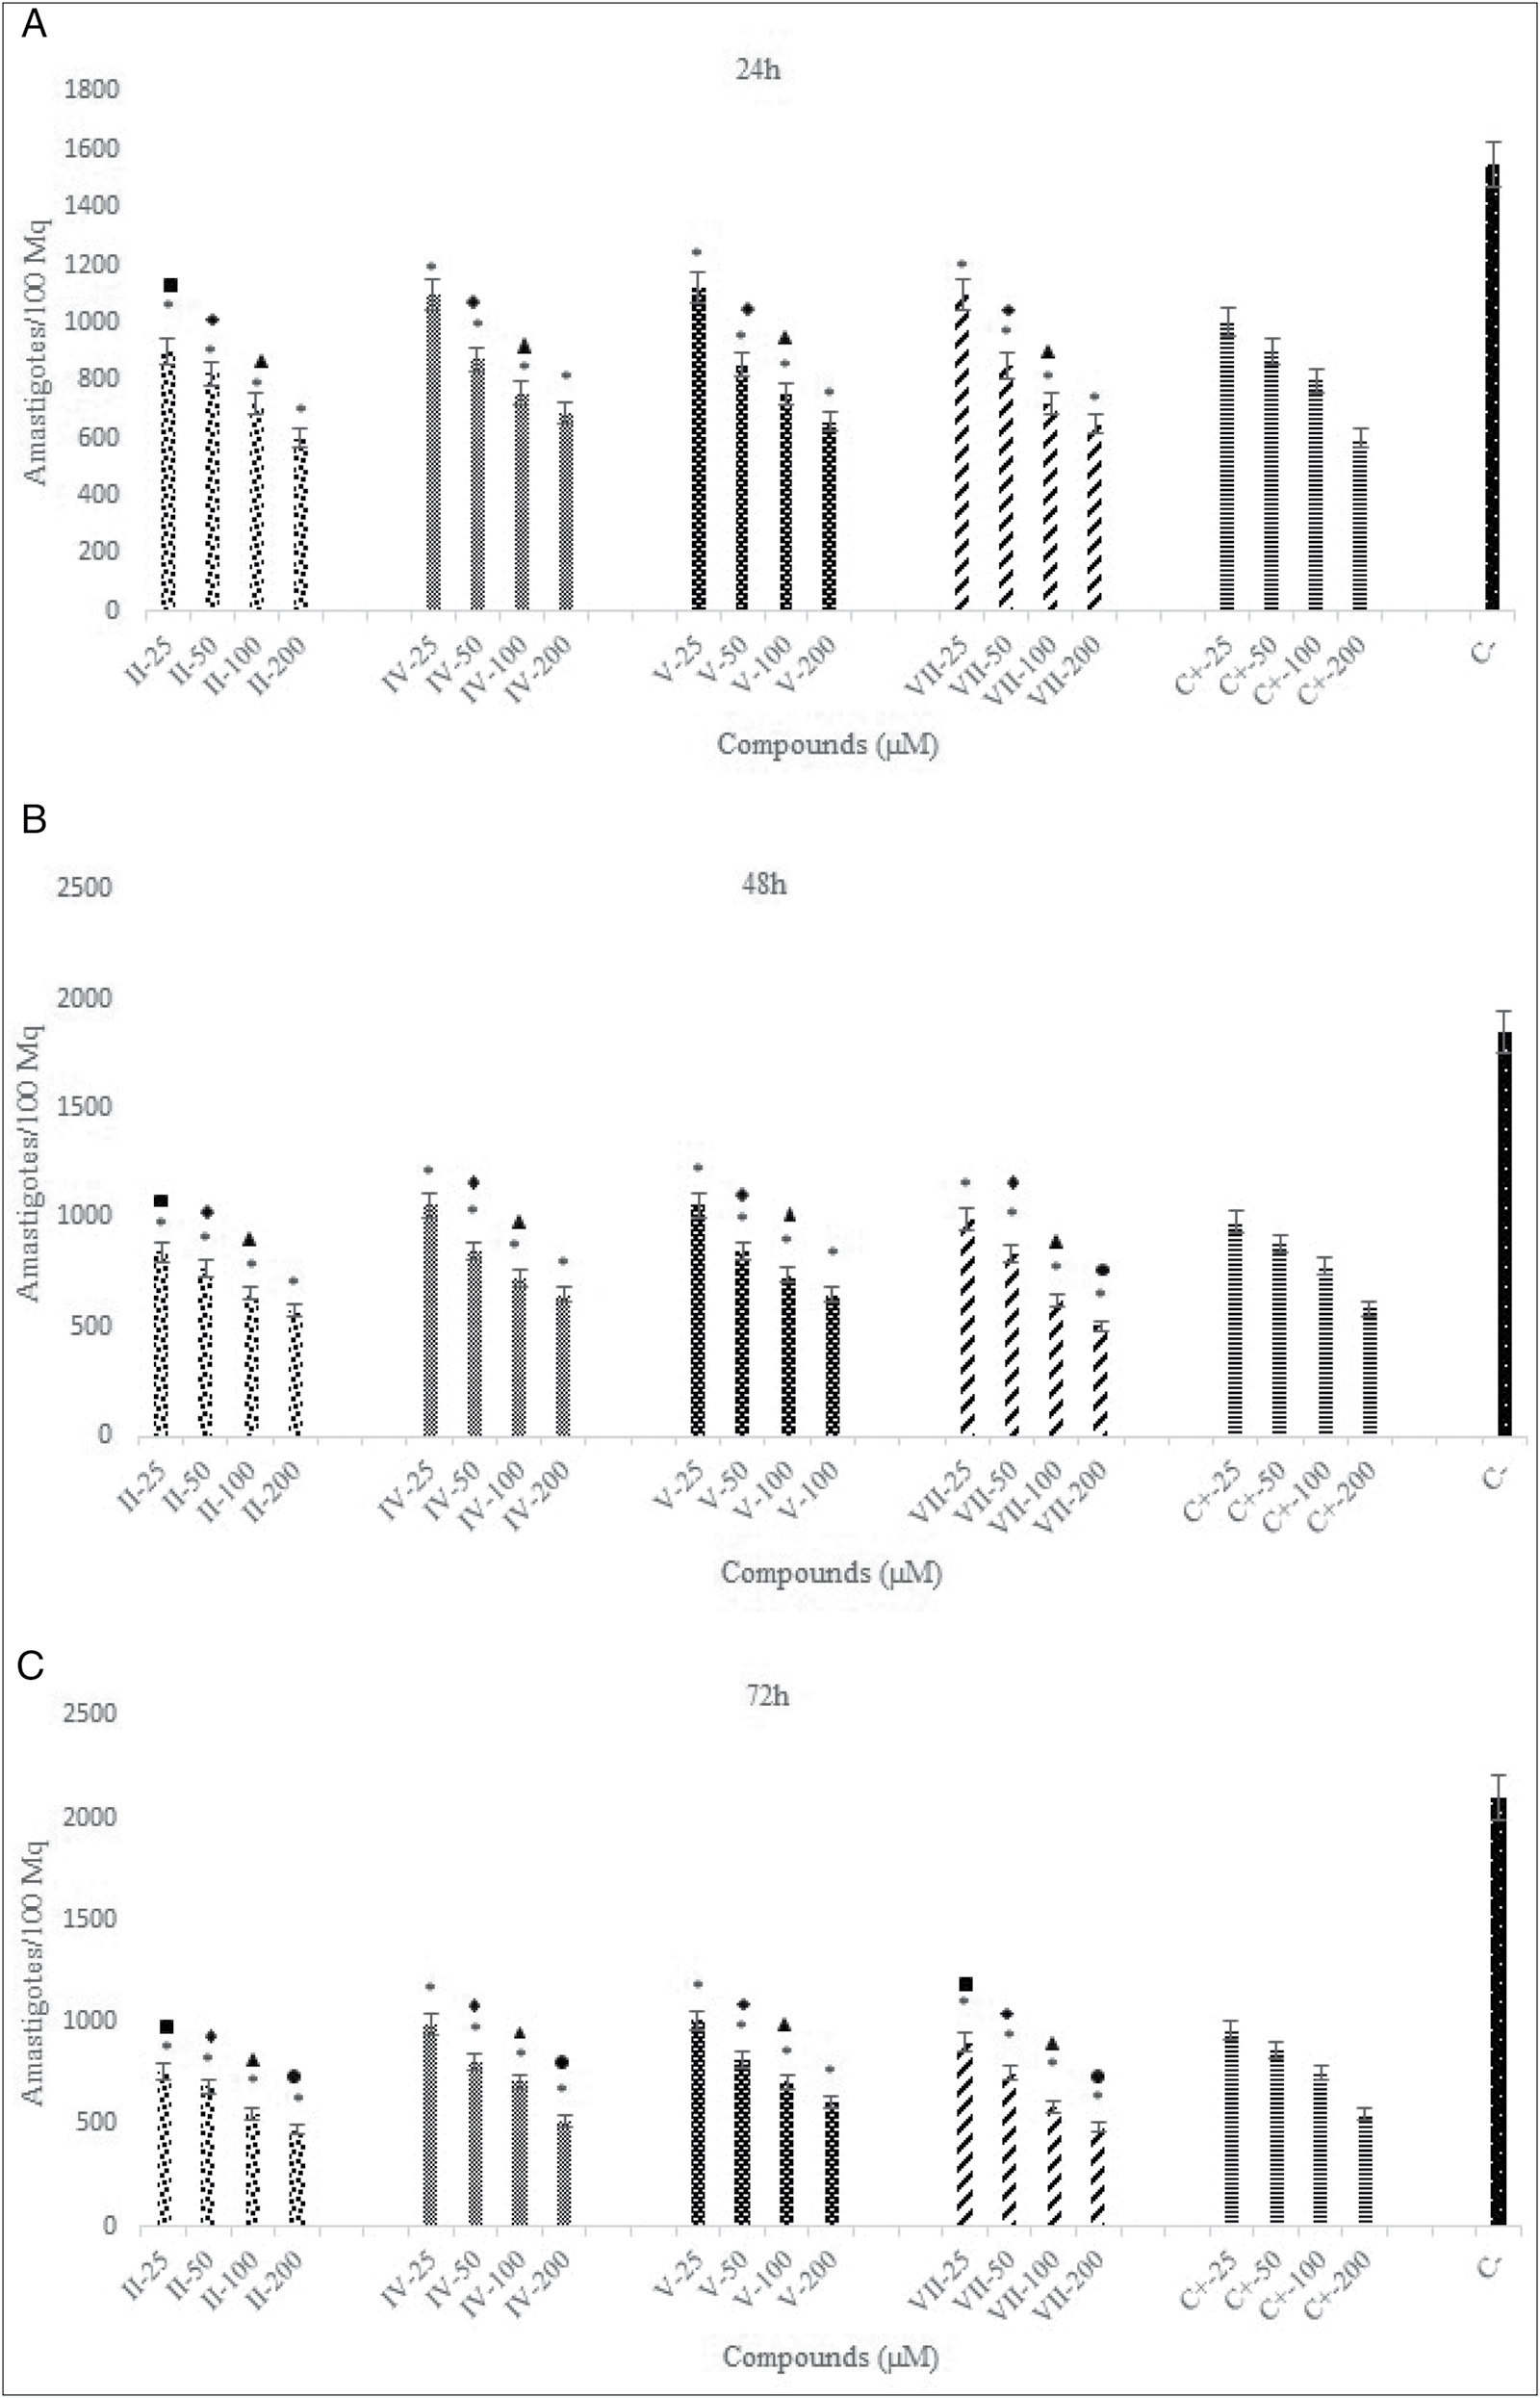 Figure 2: <i>In vitro</i> activity of target compounds against intramacrophage amastigotes of <i>Leishmania major</i>. (A) The mean number of amastigotes per 100 macrophages after treatment with target compounds for 24h. (B) The mean number of amastigotes per 100 macrophages after treatment with target compounds for 48h. (C) The mean number of amastigotes per 100 macrophages after treatment with the target compounds for 72h. (*<i>P</i> < 0.001 vs. negative control; <i>◼ P</i> < 0.001 vs. Glu-25, compounds-25; <i>◆ P</i> < 0.001 vs. Glu-50, compounds-50; ▲<i>P</i> < 0.001 vs. Glu-100, compounds-100; ● <i>P</i> < 0.001 vs. Glu-200, compounds-200